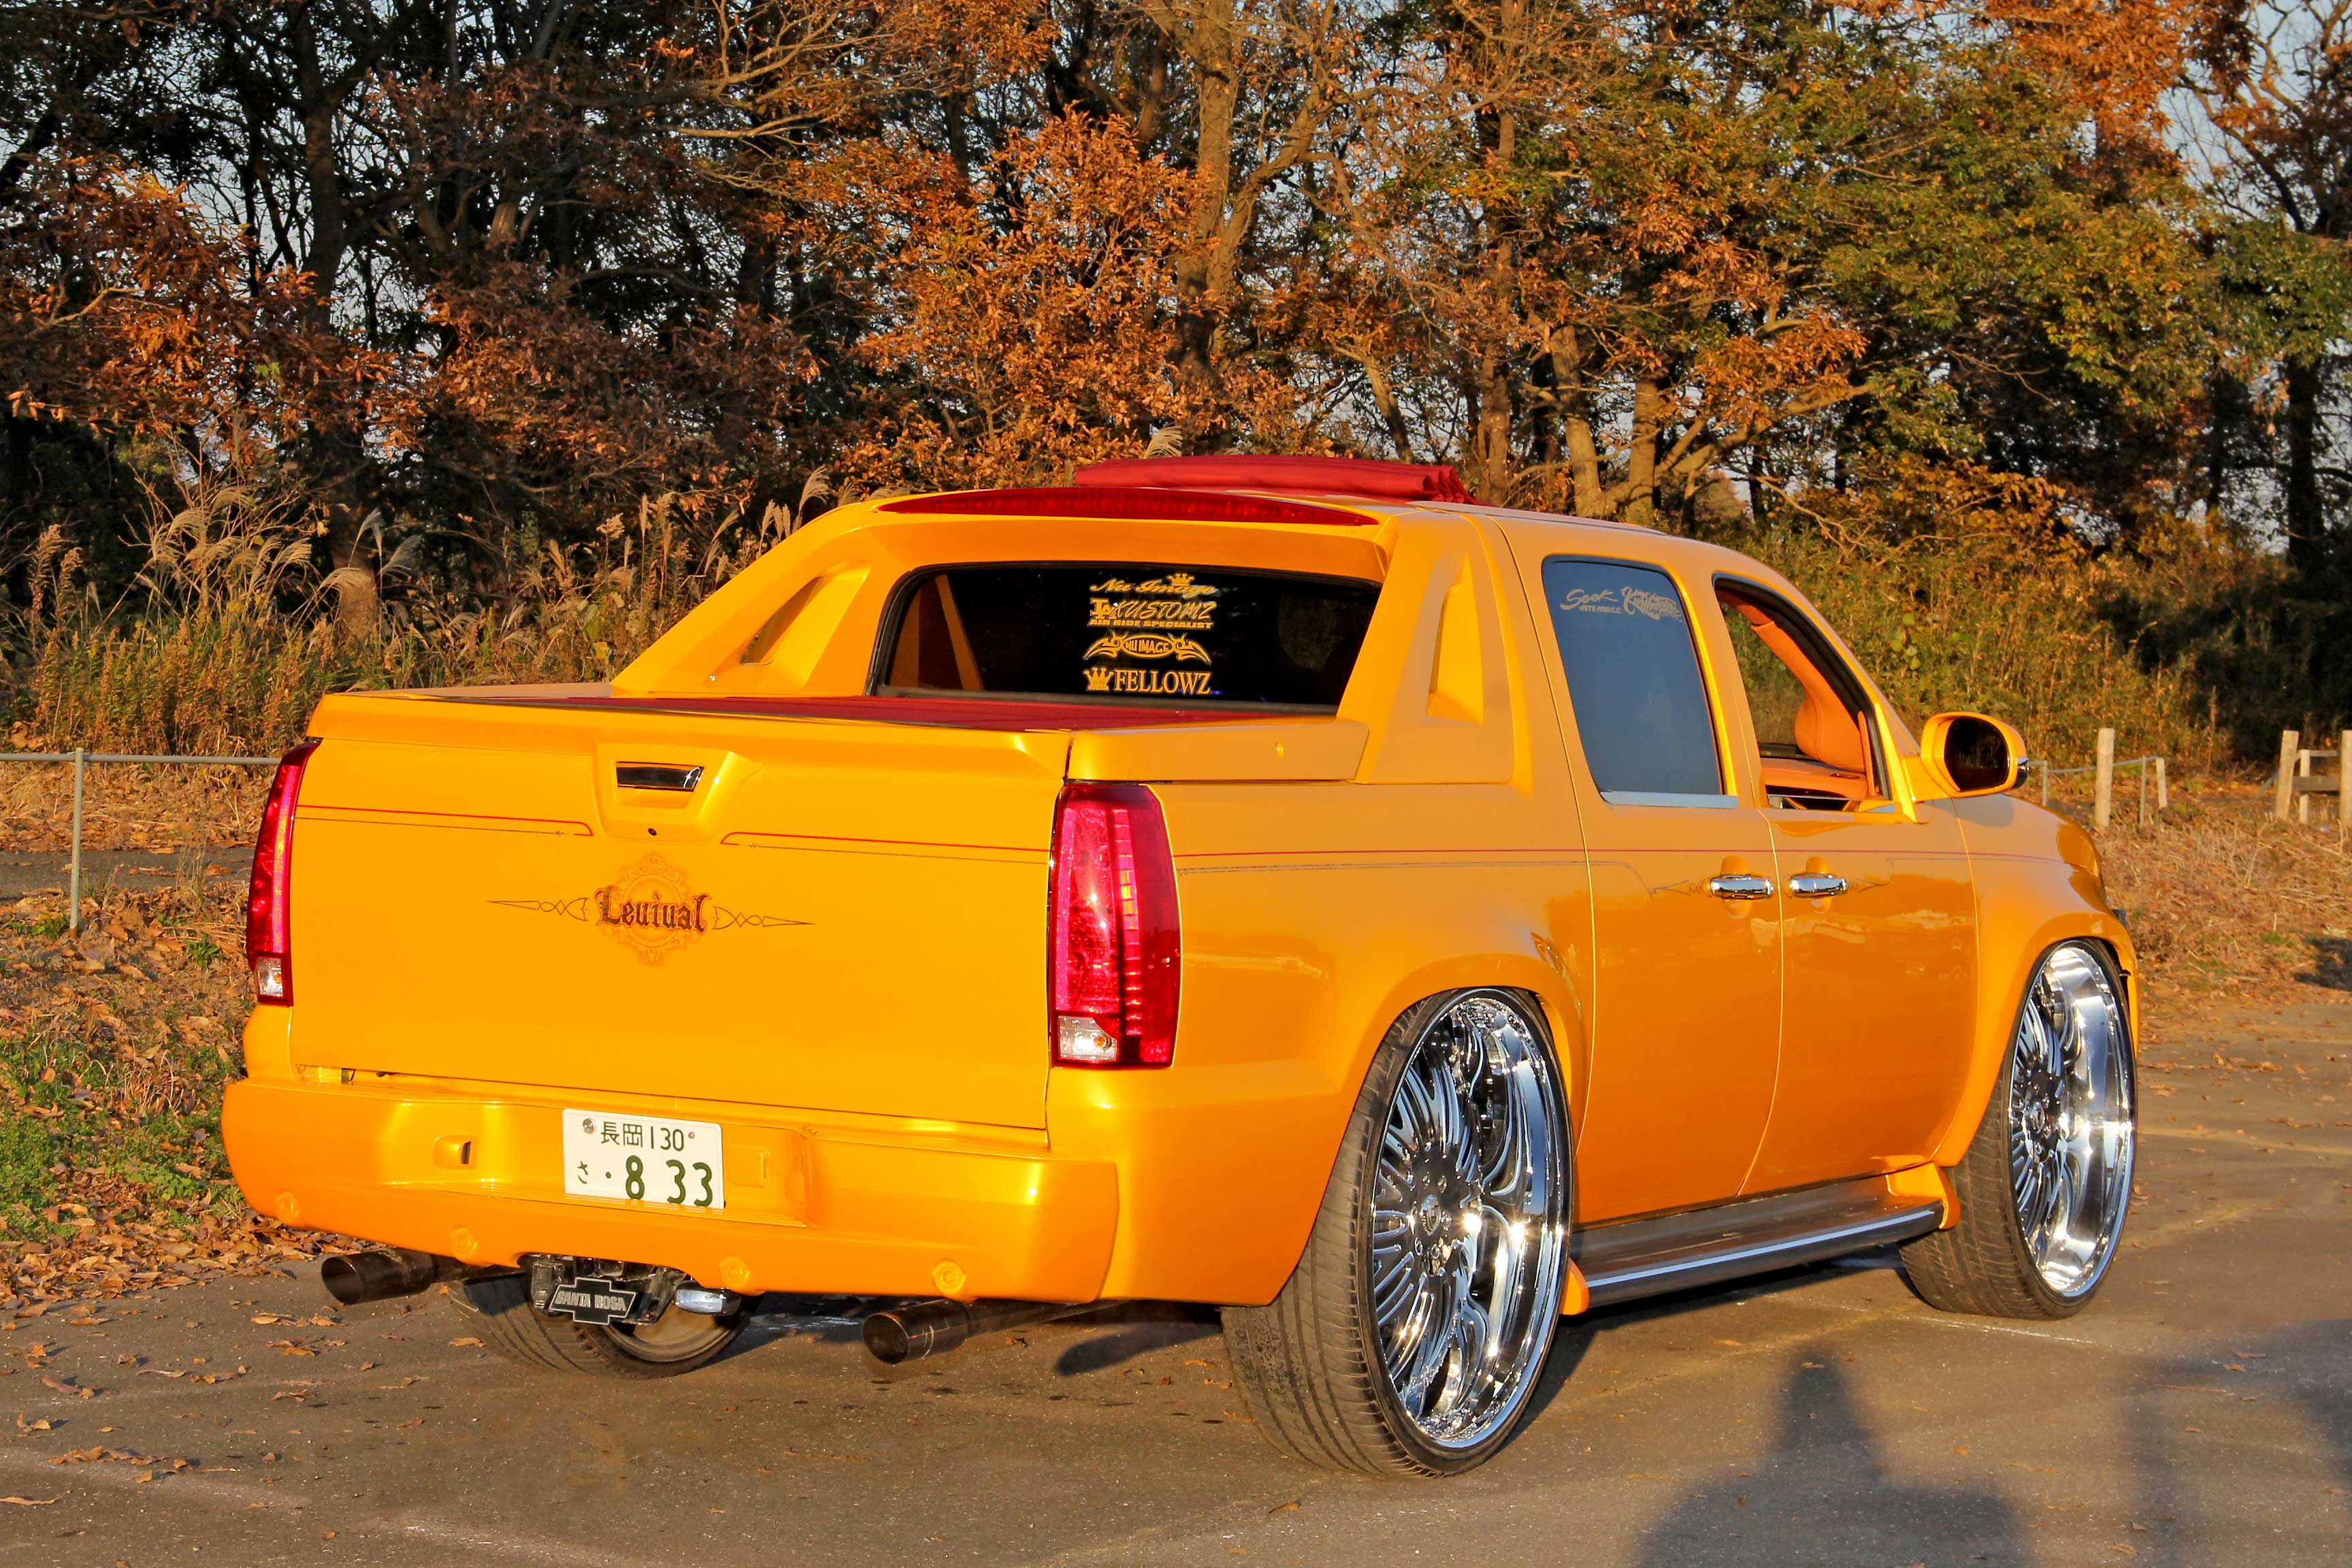 2007 chevrolet avalanche japanese gold lowrider. Black Bedroom Furniture Sets. Home Design Ideas